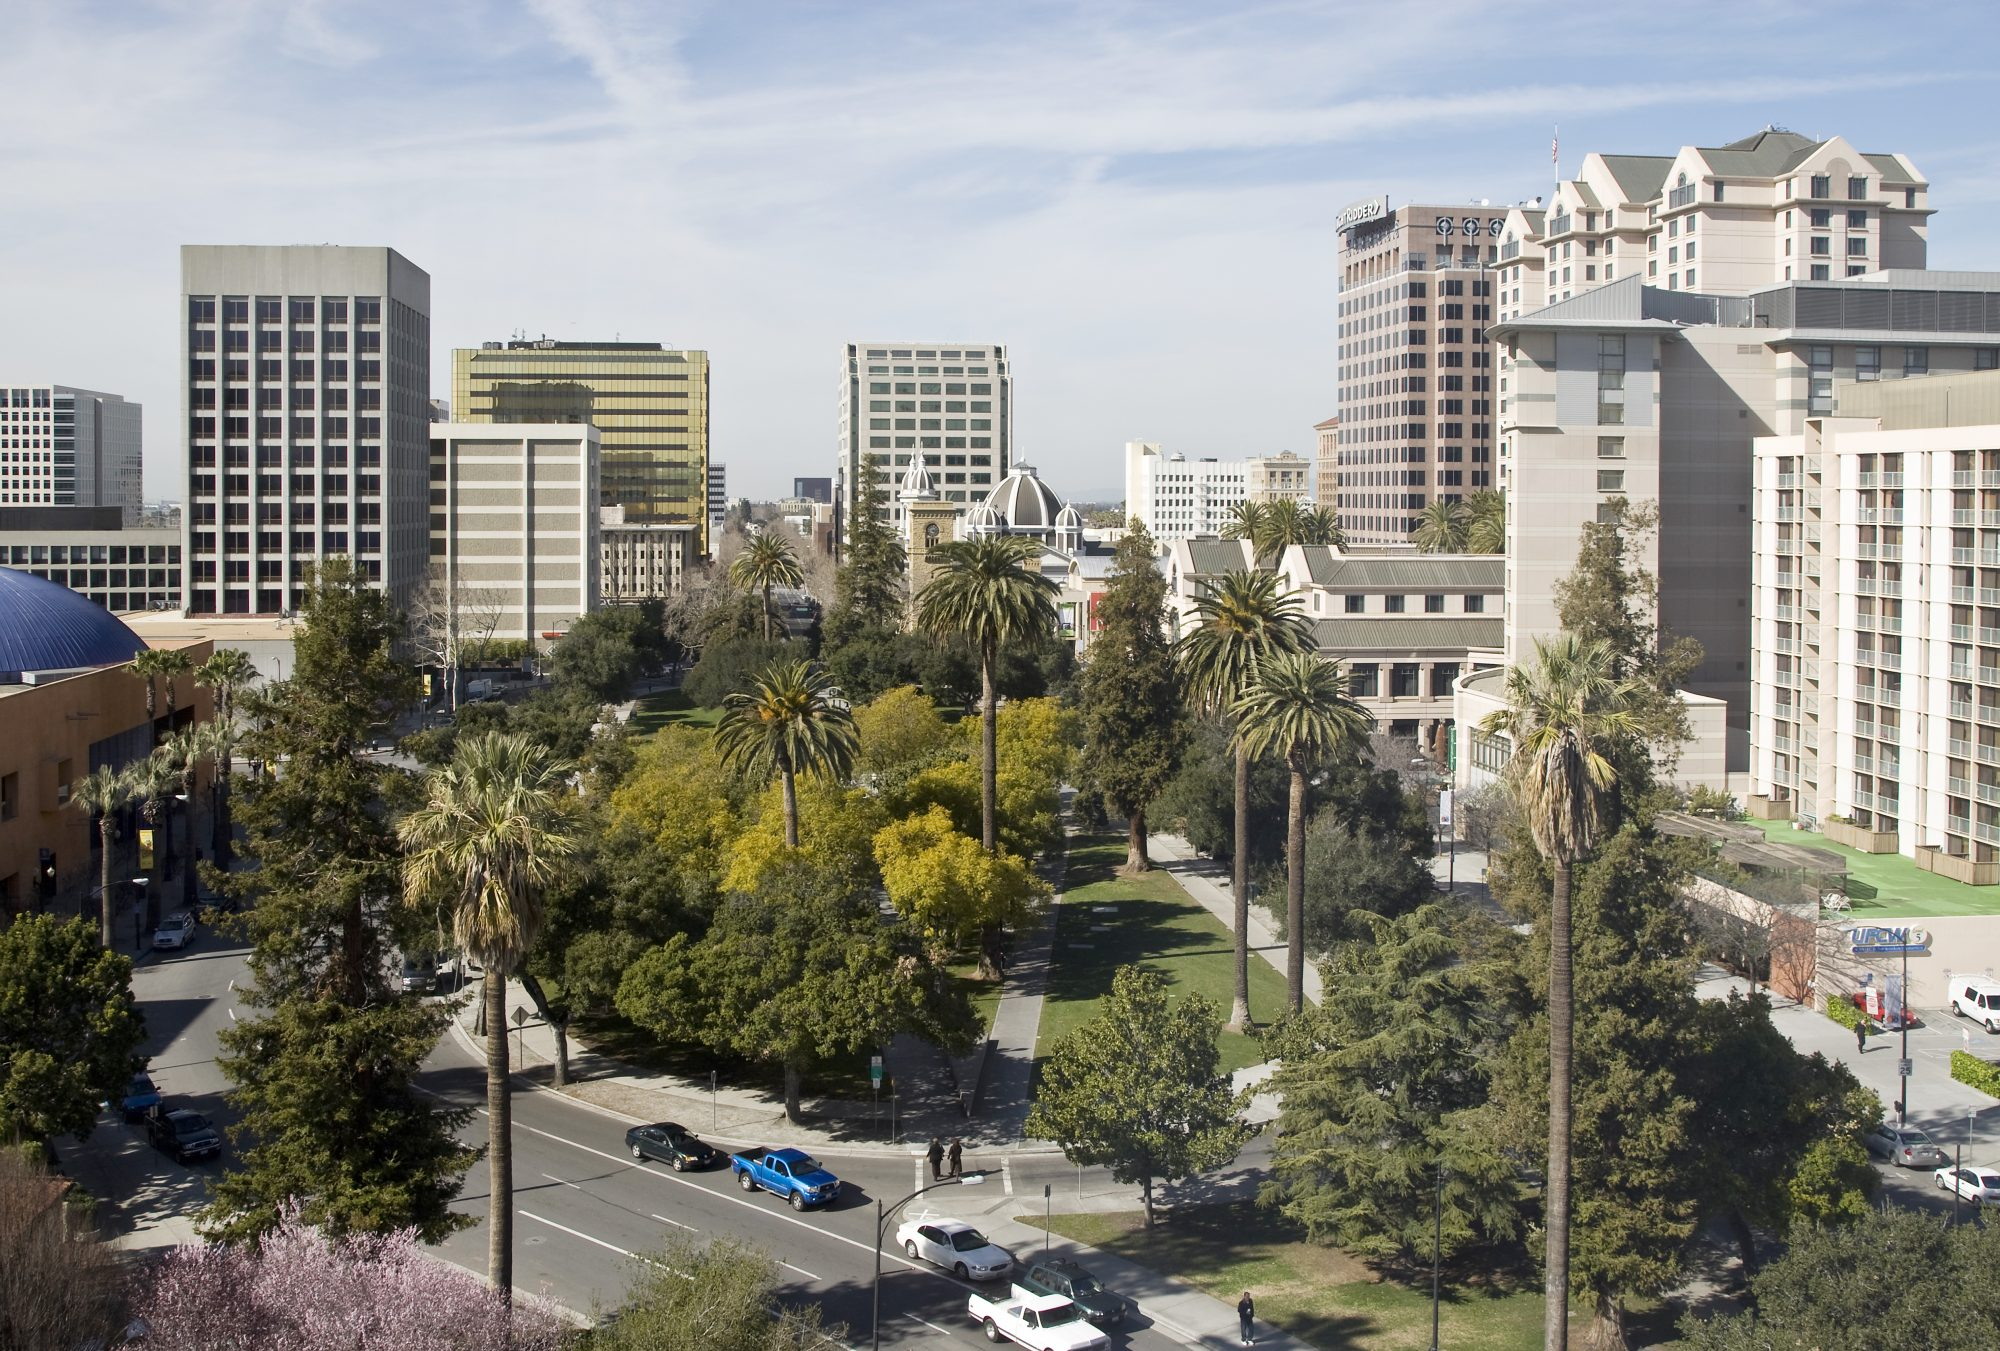 4. San Jose, California